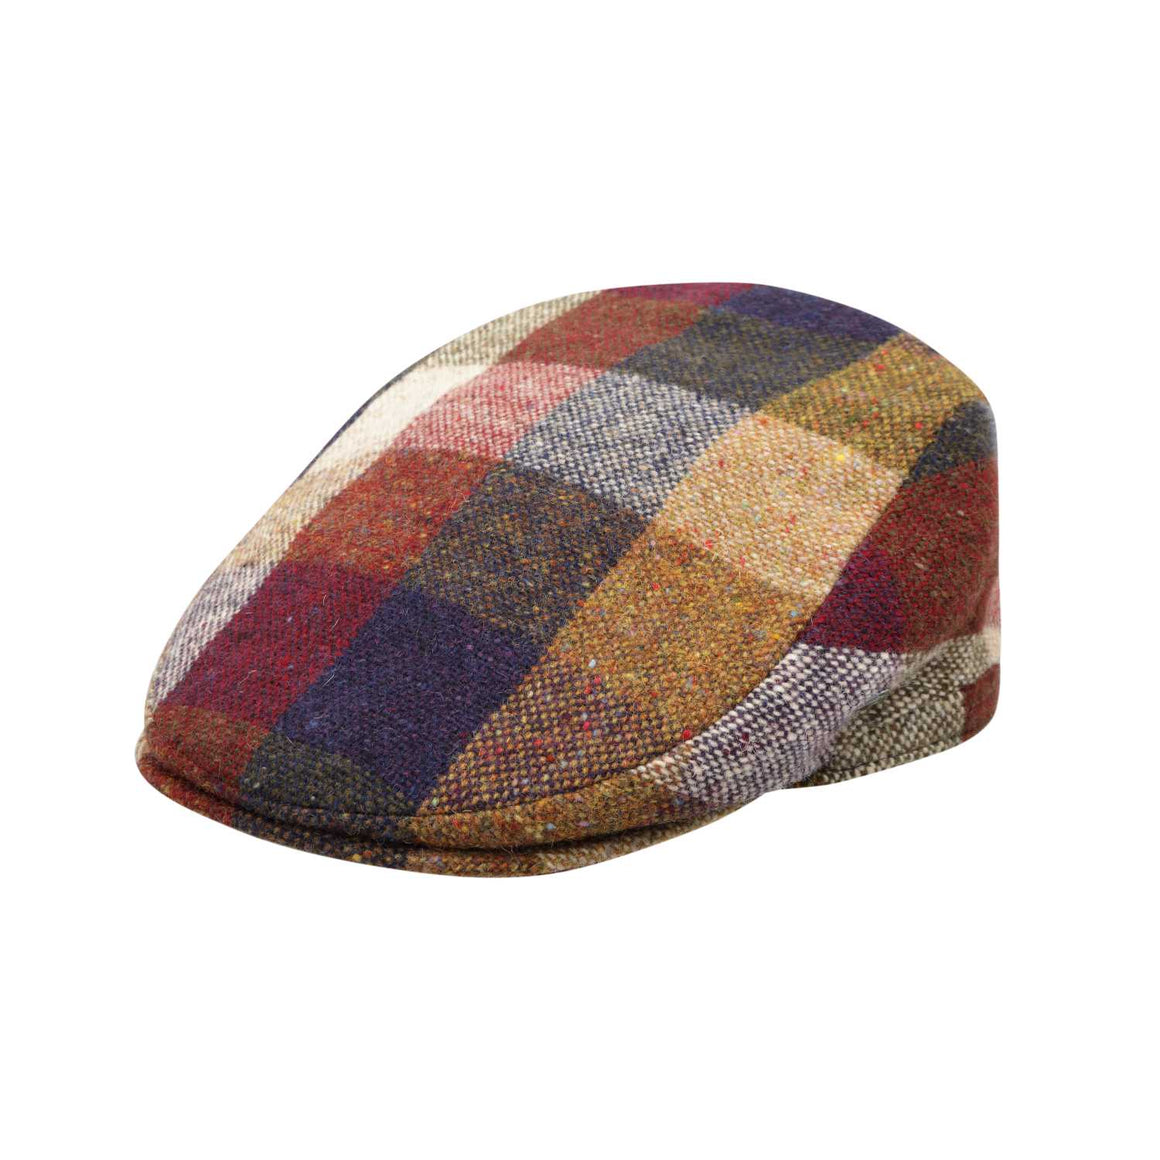 The Cashmere Choice - City Sport - Extended Peak - Donegal Tweed Flat Cap - Beige Navy 3465